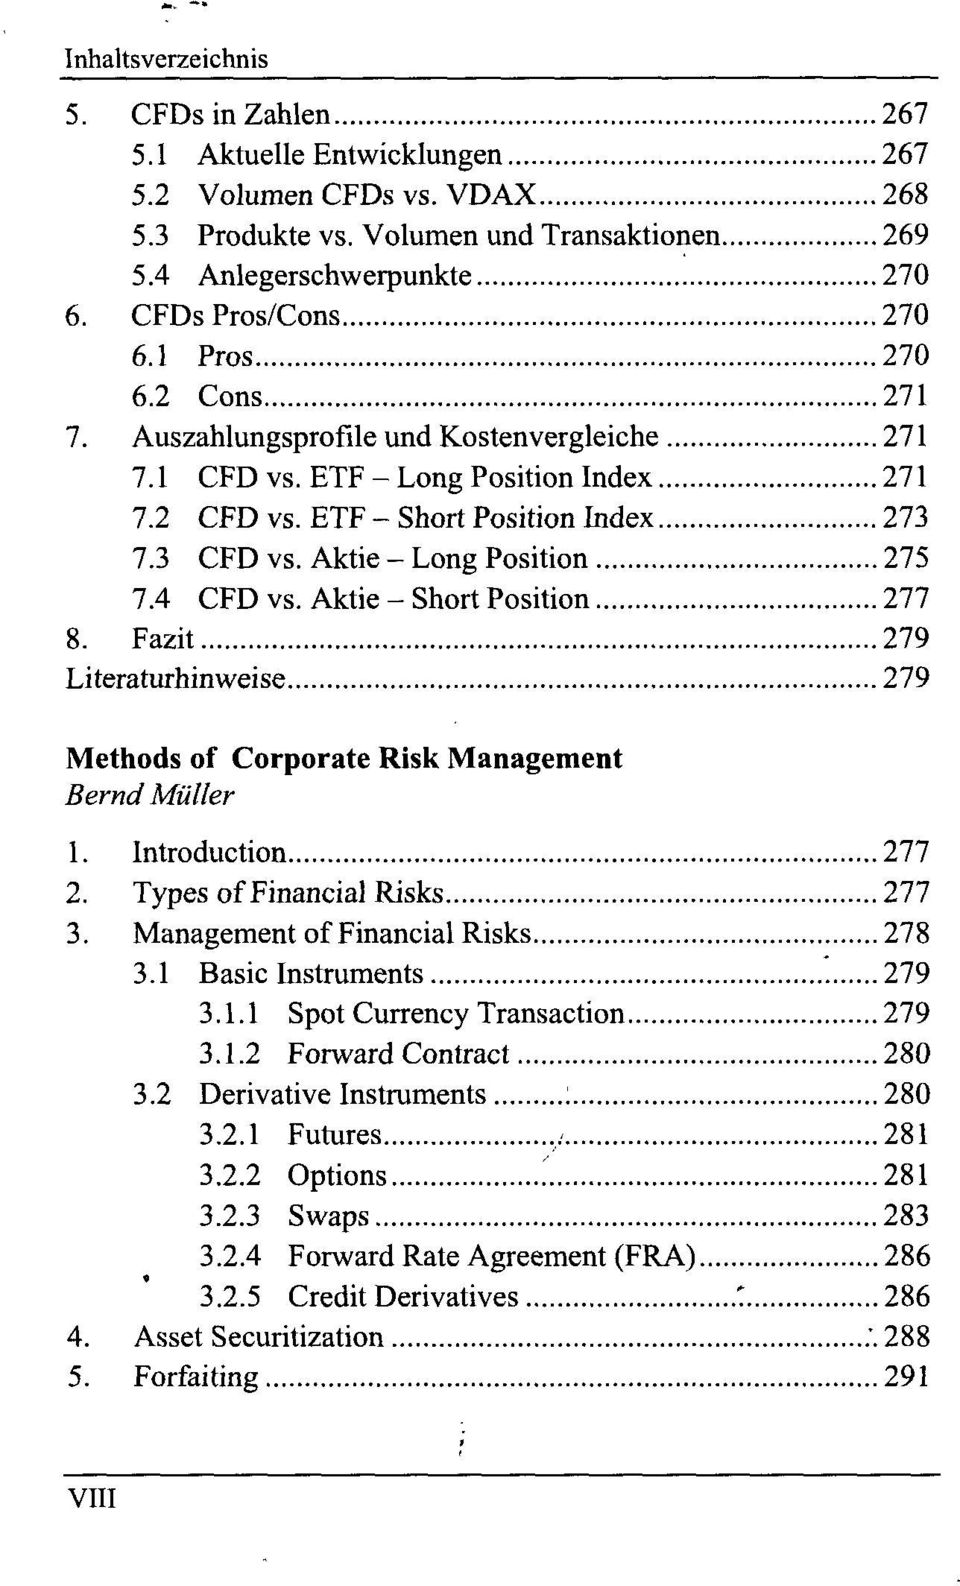 Aktie - Short Position 277 8. Fazit 279 Literaturhinweise 279 Methods of Corporate Risk Management Bernd Müller 1. Introduction 277 2. Types of Financial Risks 277 3.